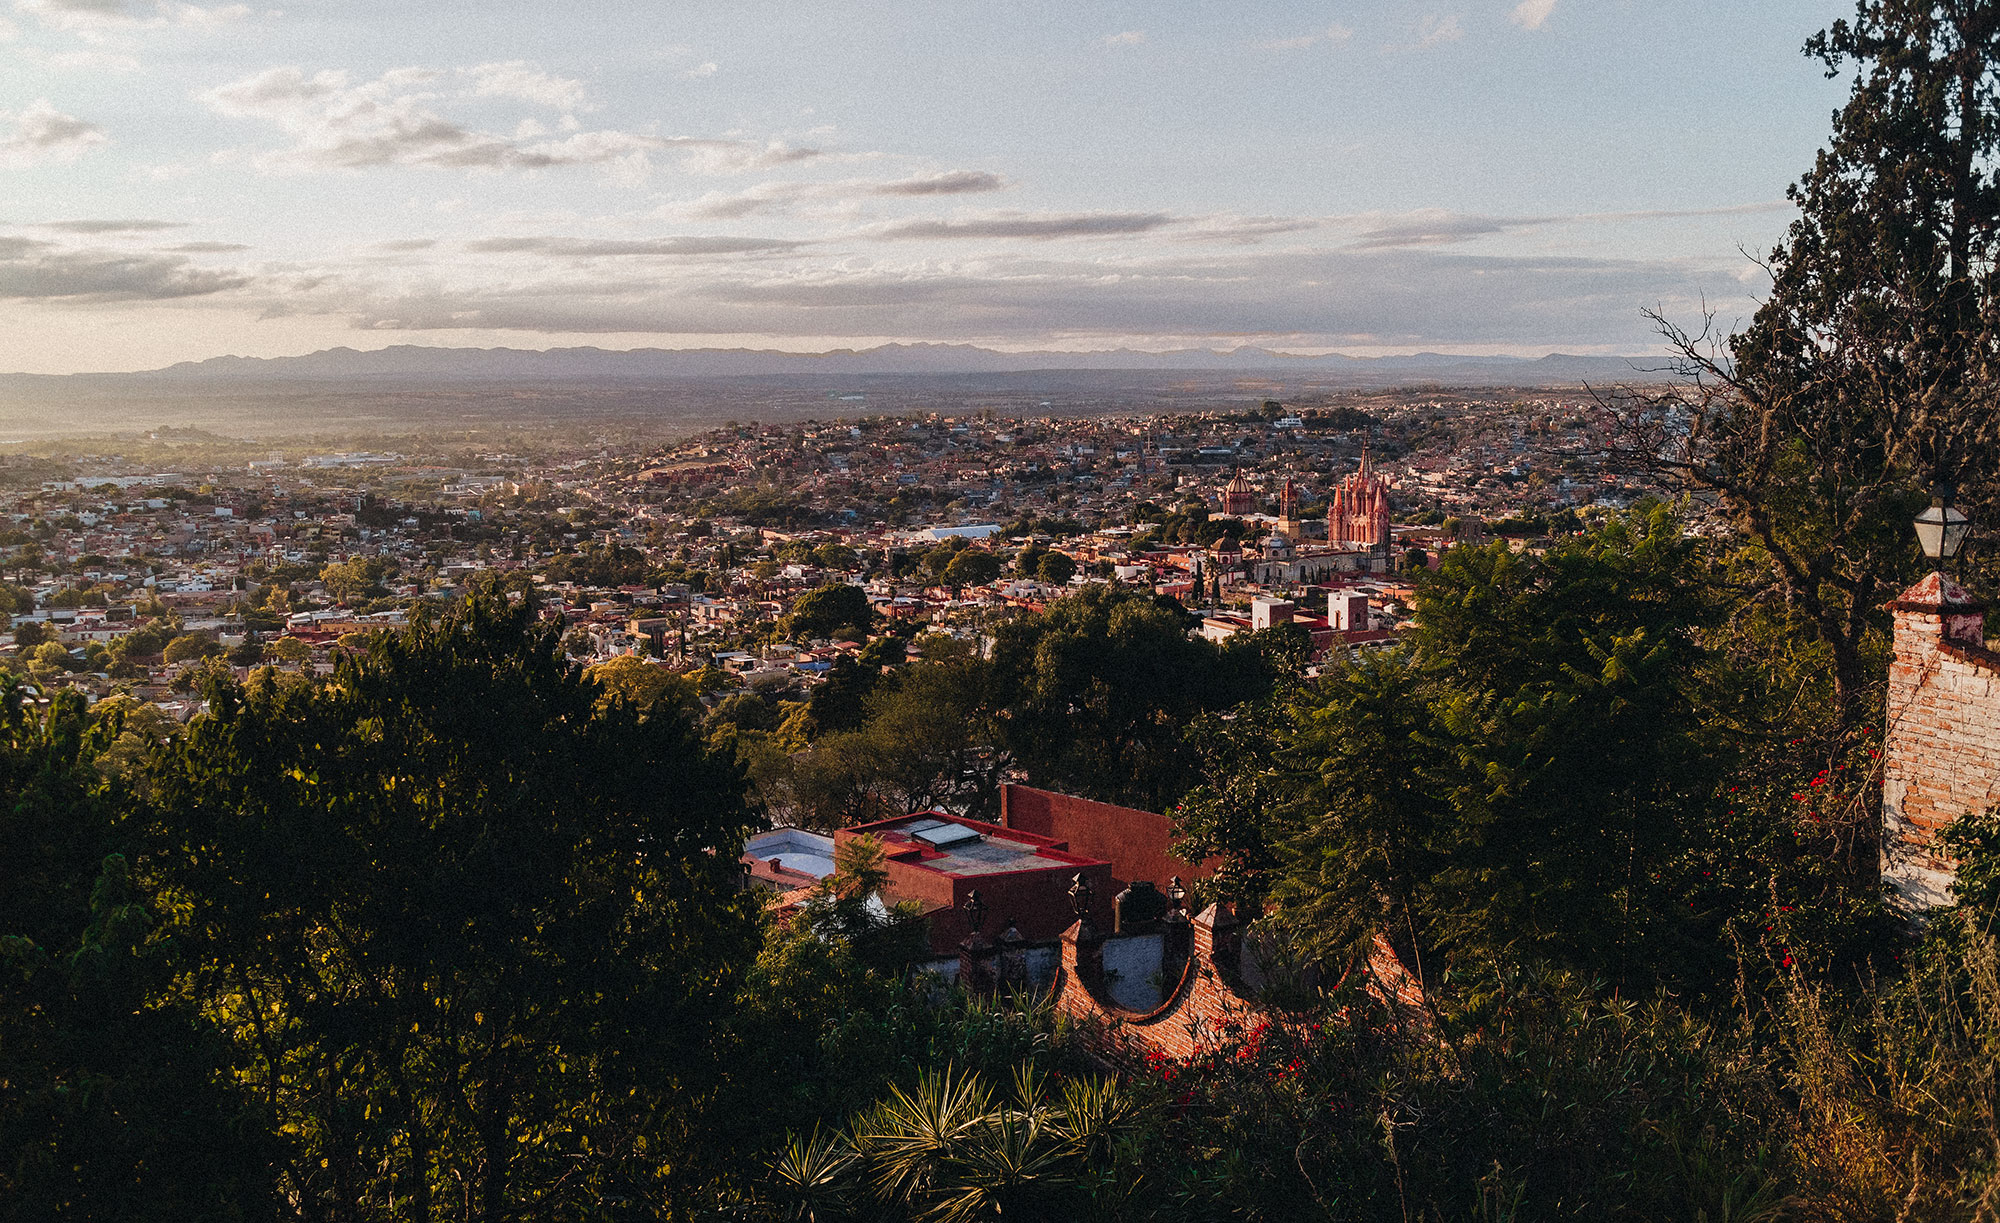 Sundowner over San Miguel de Allende / A Quick Travel Guide To San Miguel de Allende – 7 Things To Do & See / Guanajuato, Mexico by Alice M. Huynh - iHeartAlice.com Travel, Fashion & Lifestyleblog / Mexico Travel Guide